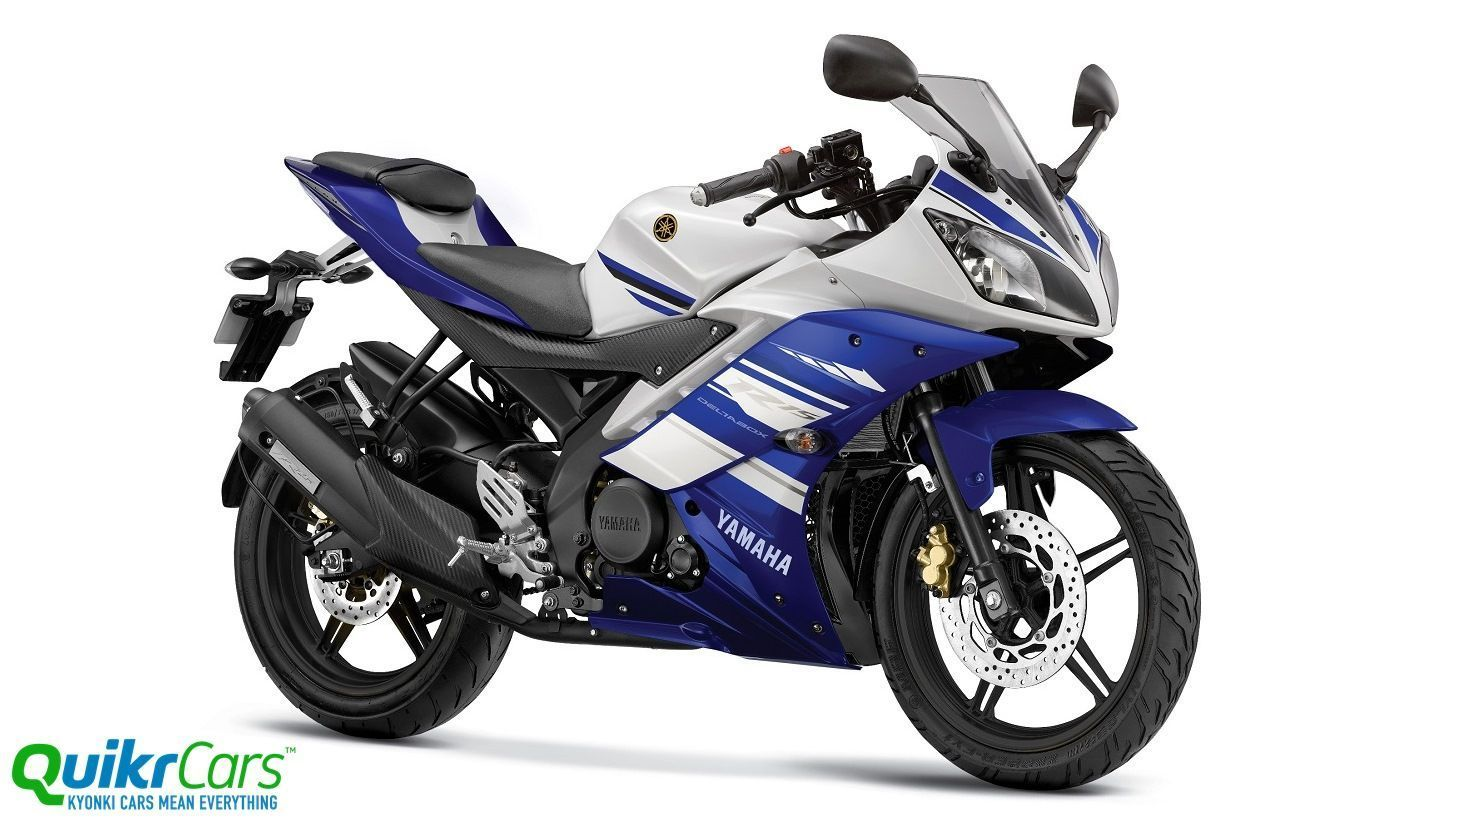 Yamaha r15 v3 spotted testing in indonesia